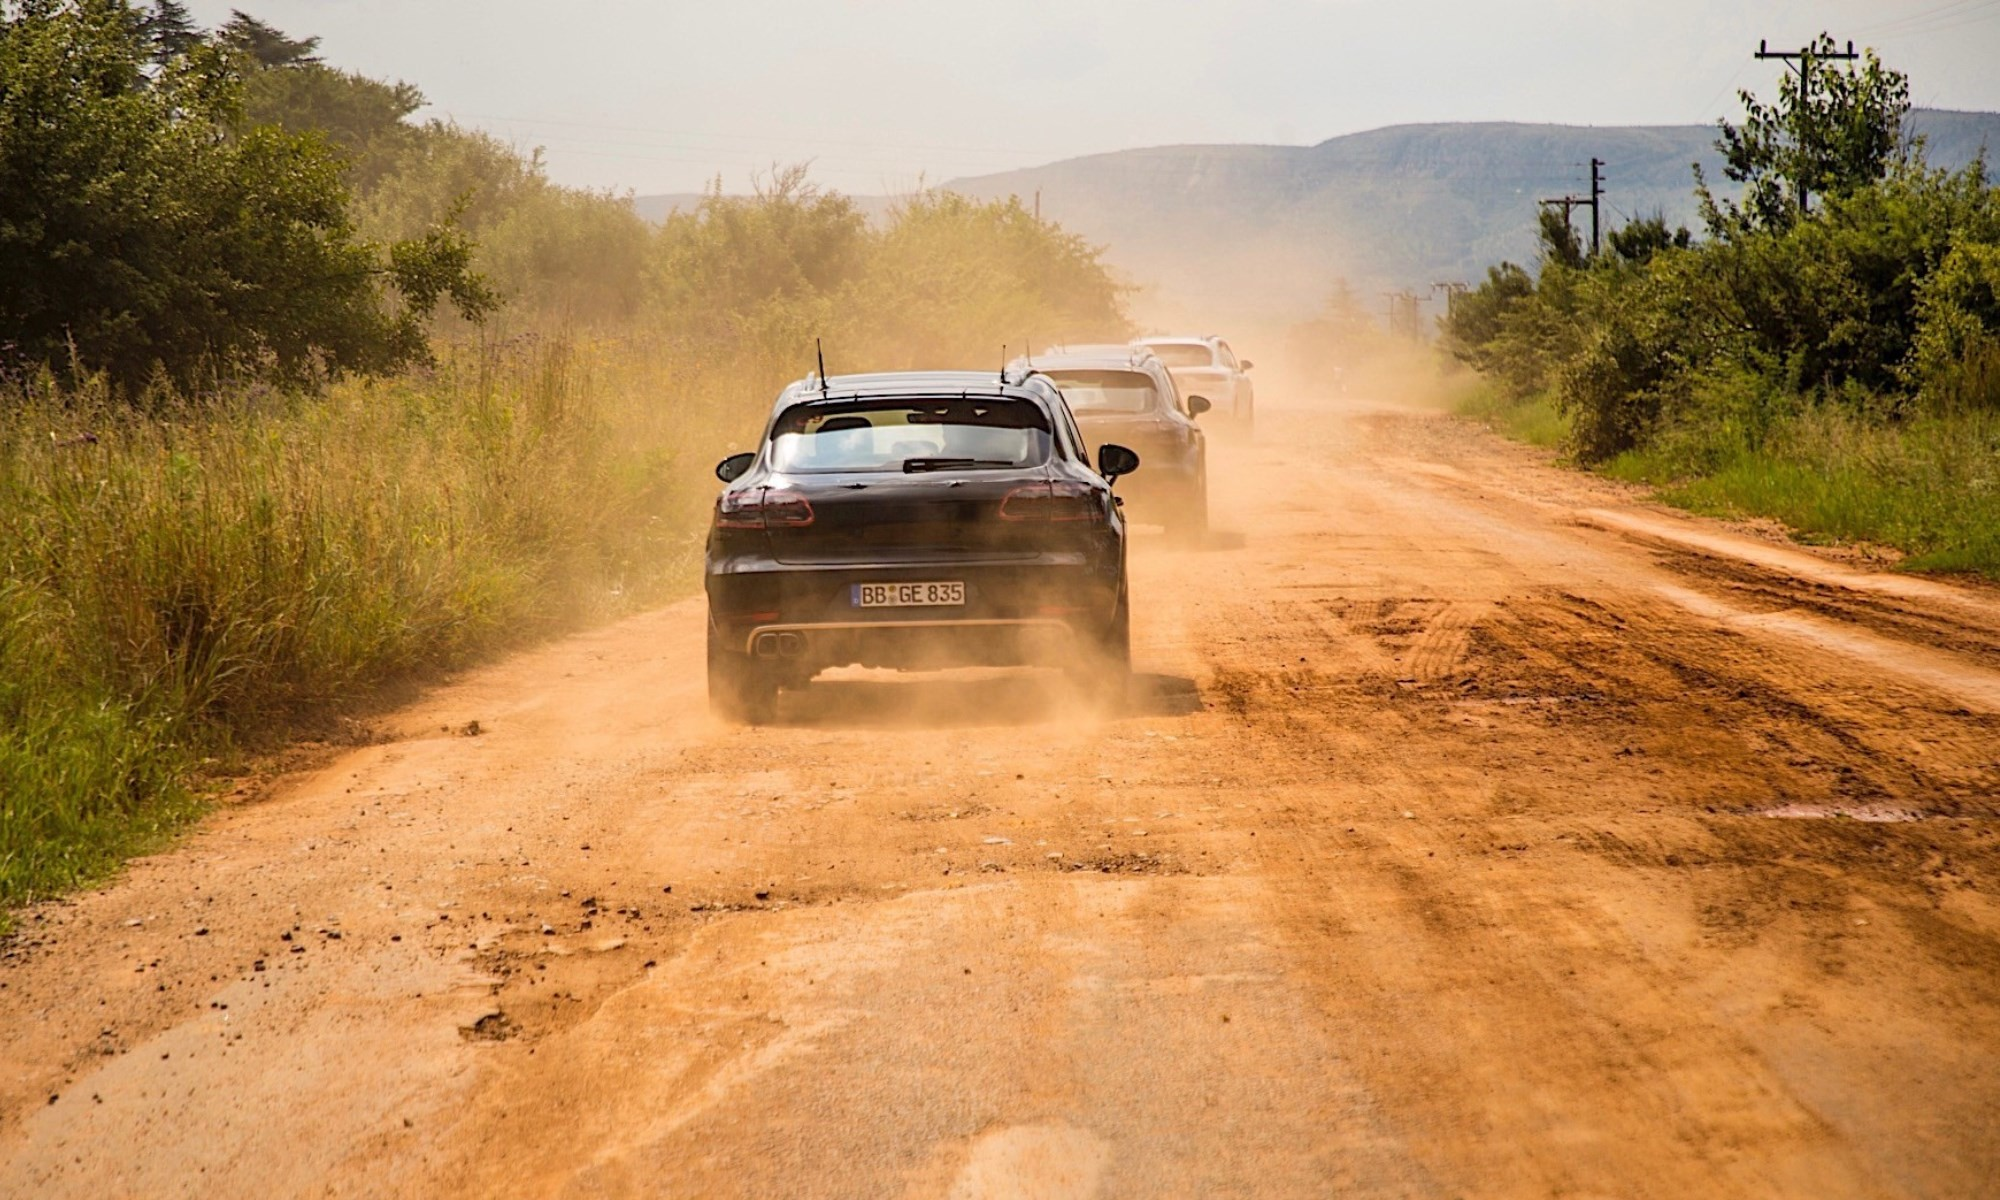 Macan trying out the unpaved roads of SA